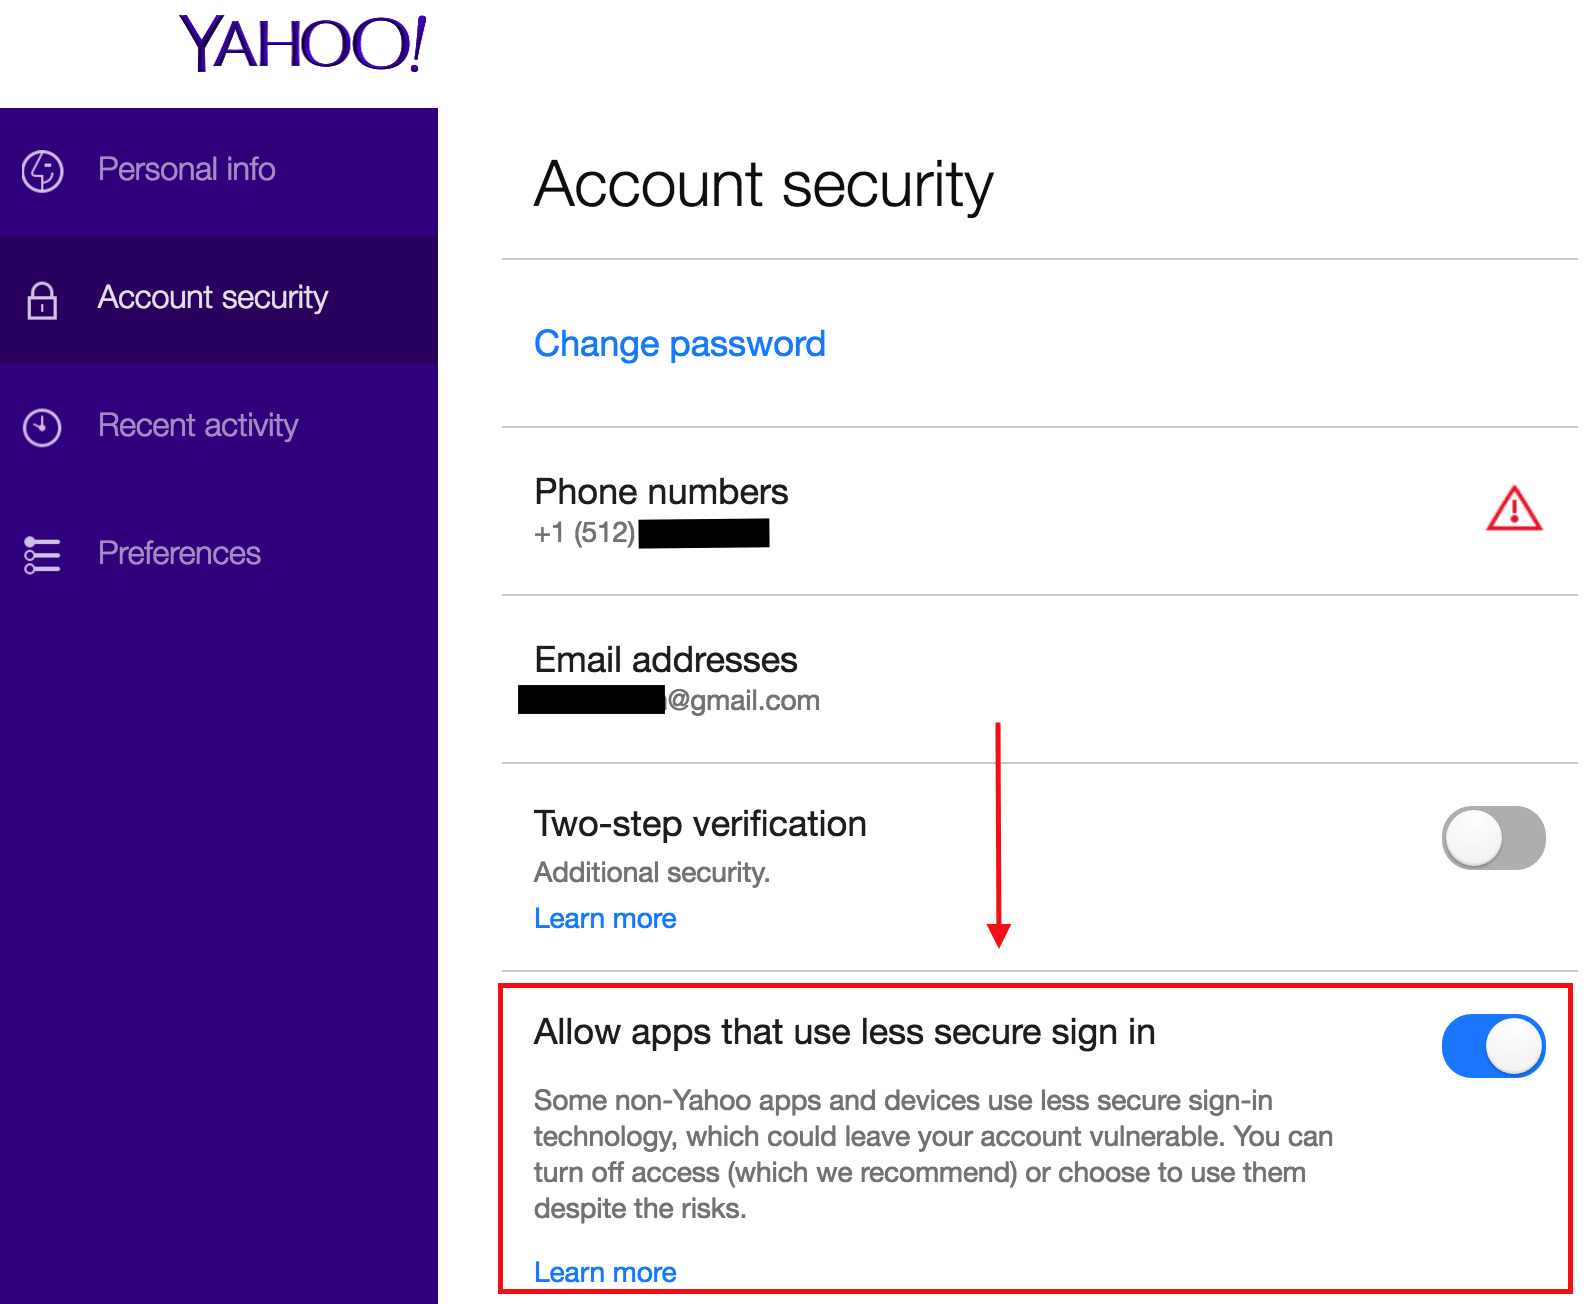 Yahoo email security settings